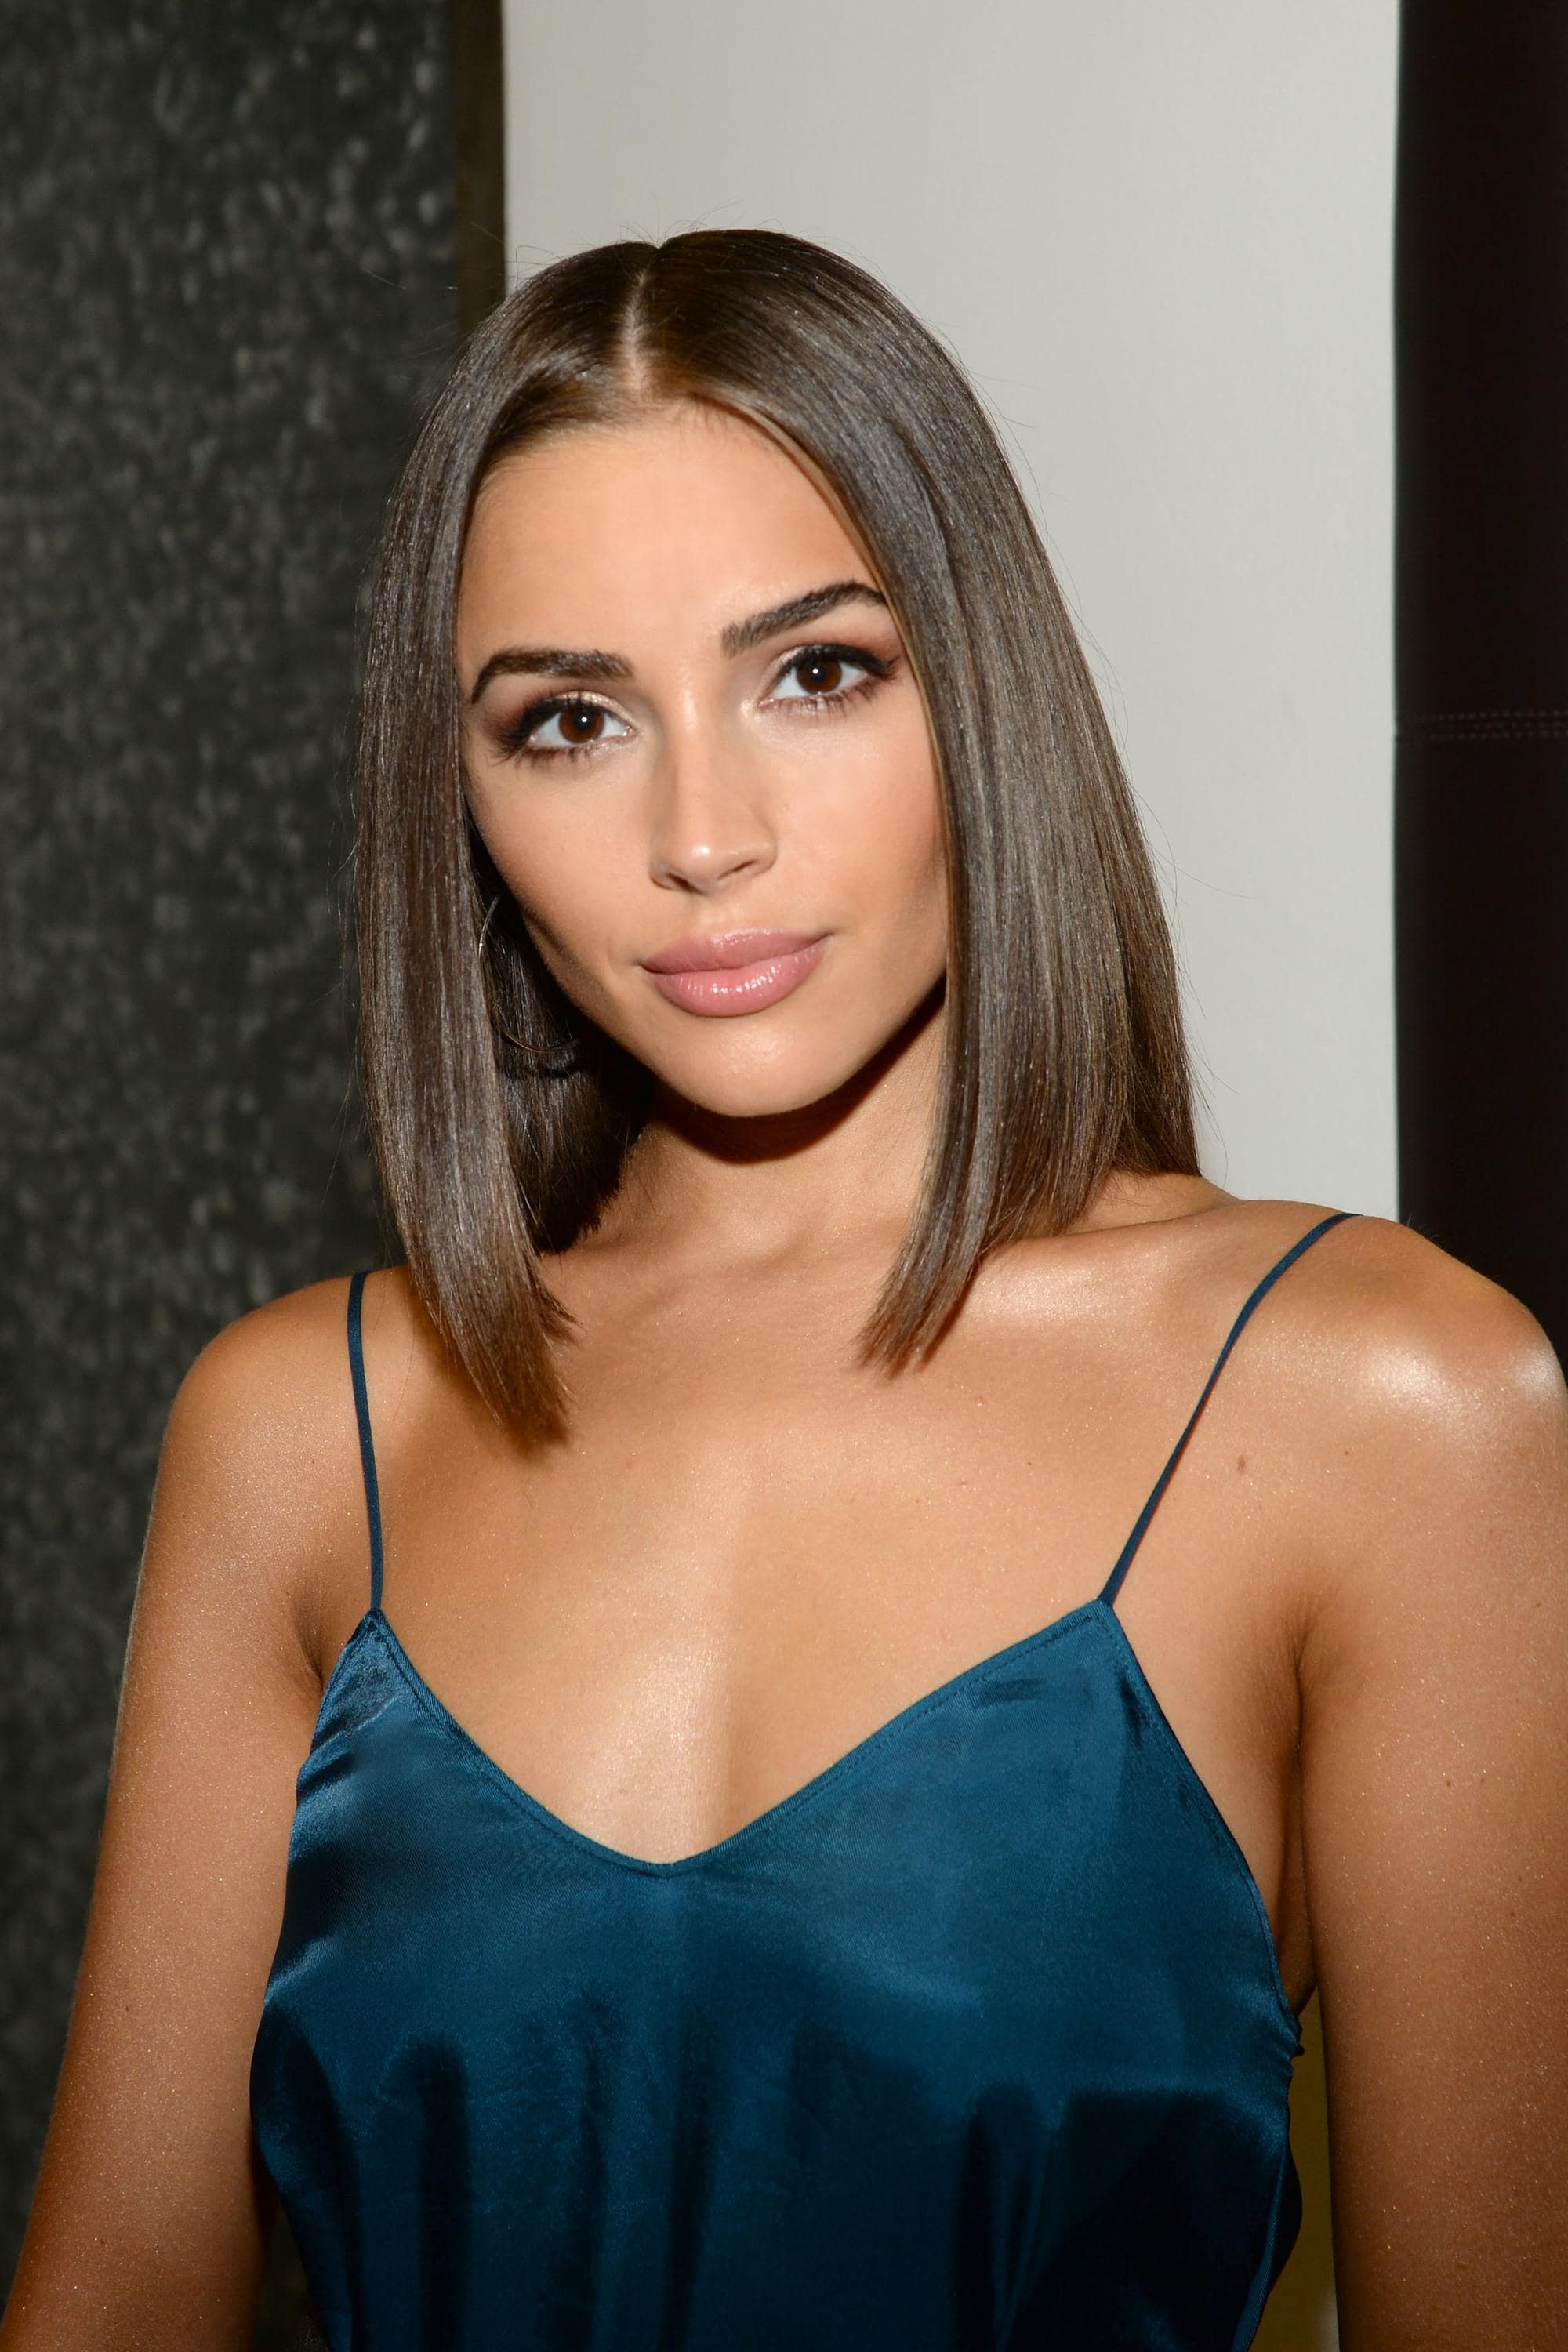 Haircuts for fine straight hair: Olivia Culpo with an A-line brunette bob, wearing a teal strappy dress